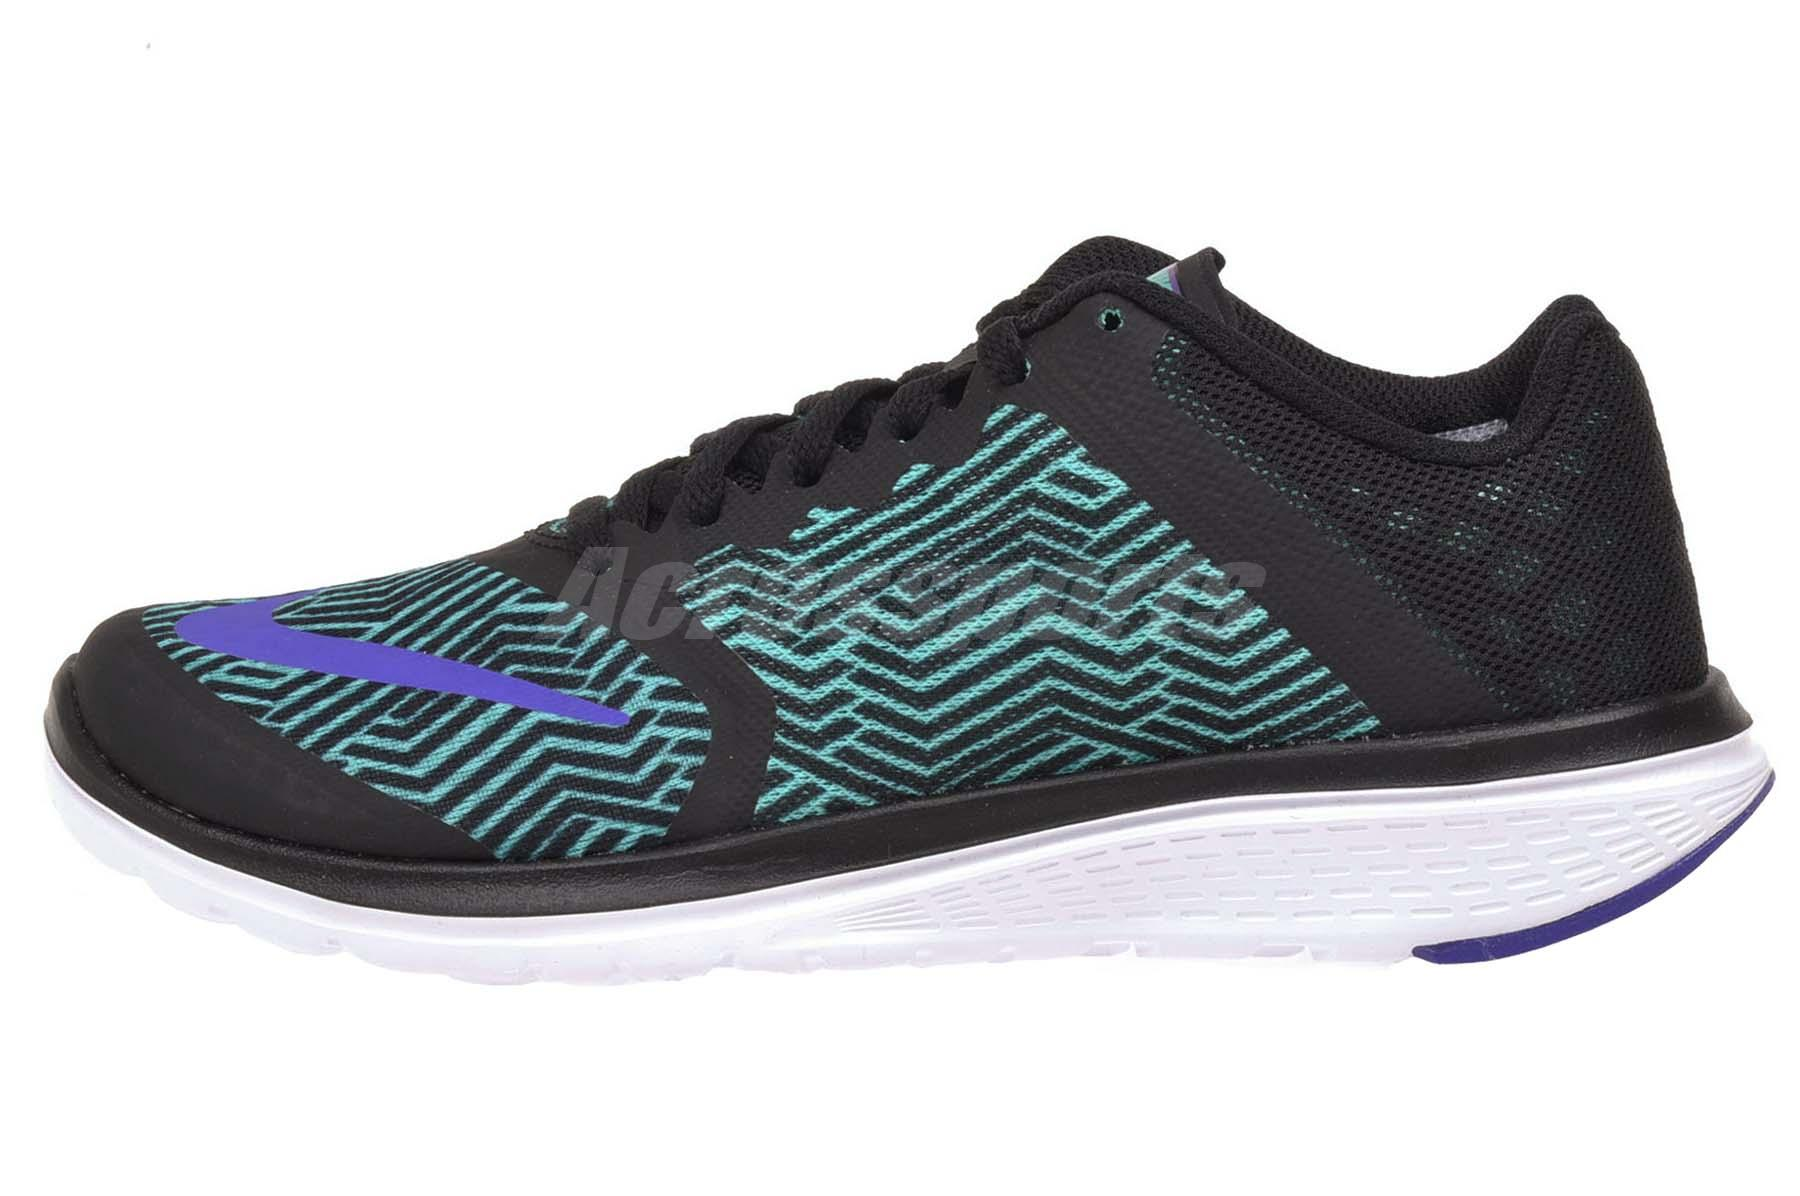 Nike Fs Lite Run 3 Midnight Turquoise Clear Jade Black White, Nike